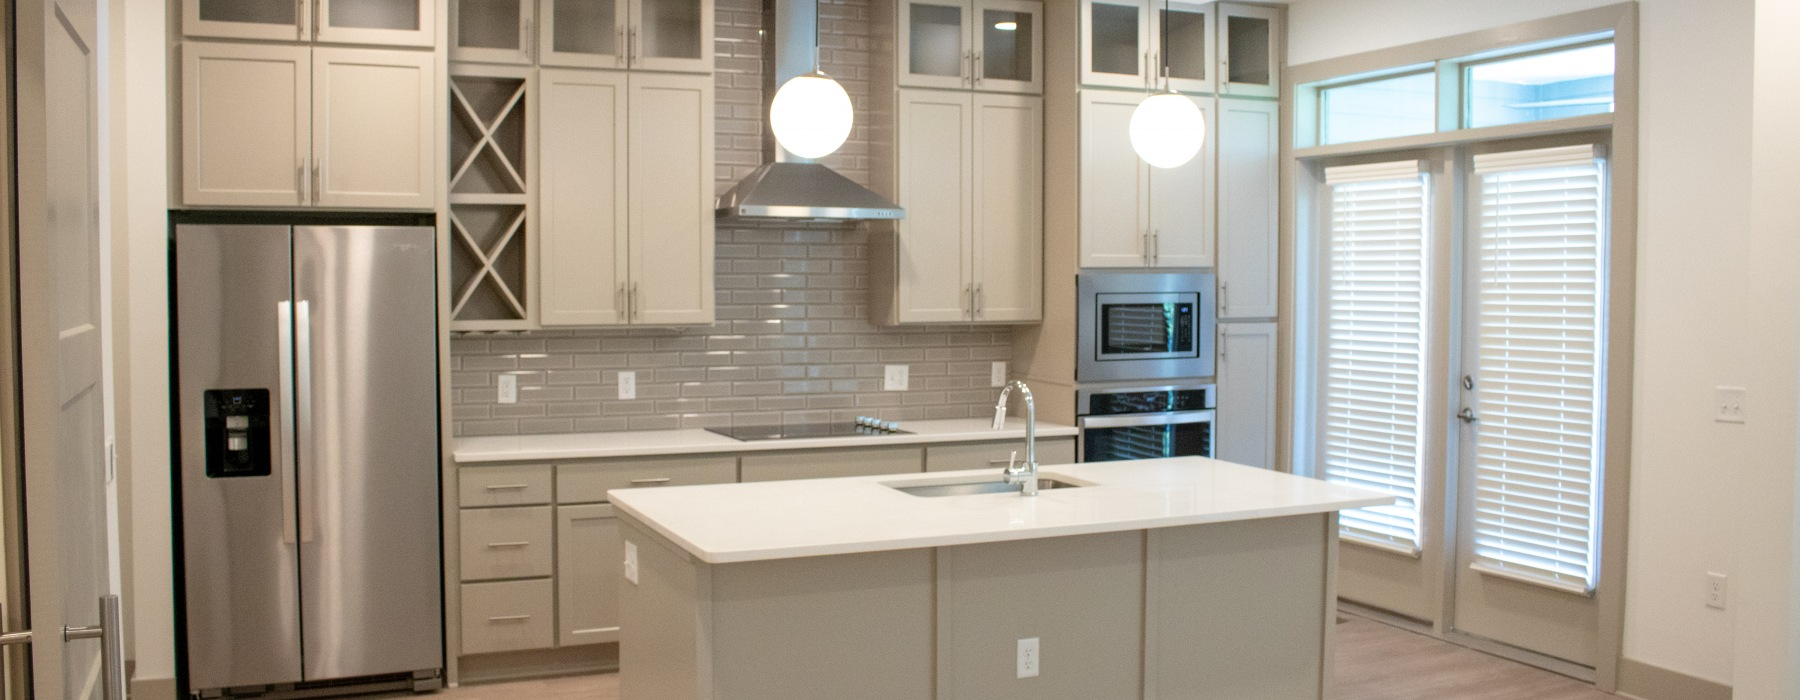 Spacious one-, two-, and three-bedroom floor plans at Towerview at Ballantyne Apartments